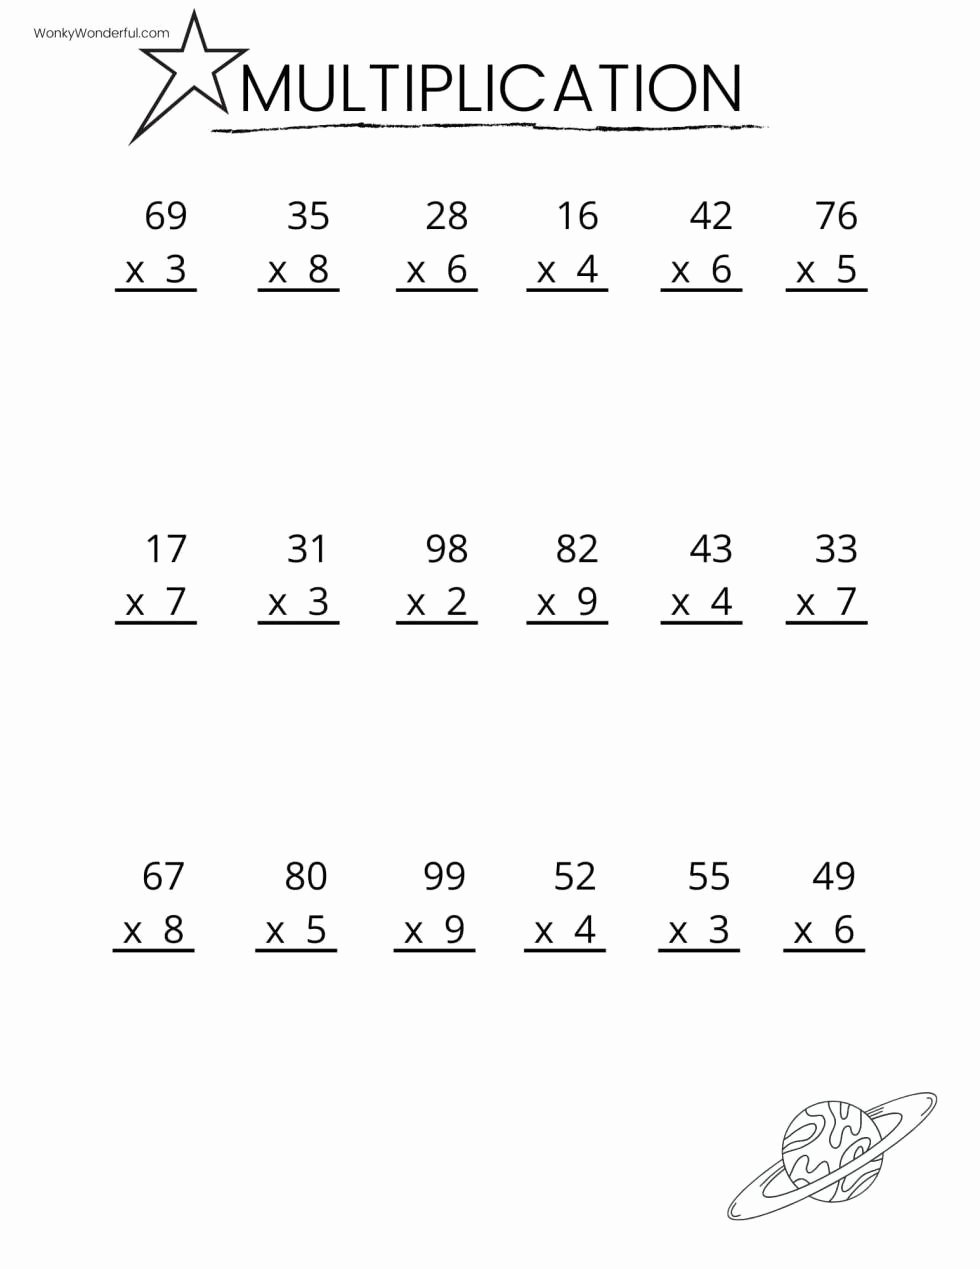 Printable Math Multiplication Worksheets Unique Free Printable Multiplication Worksheets Wonkywonderful